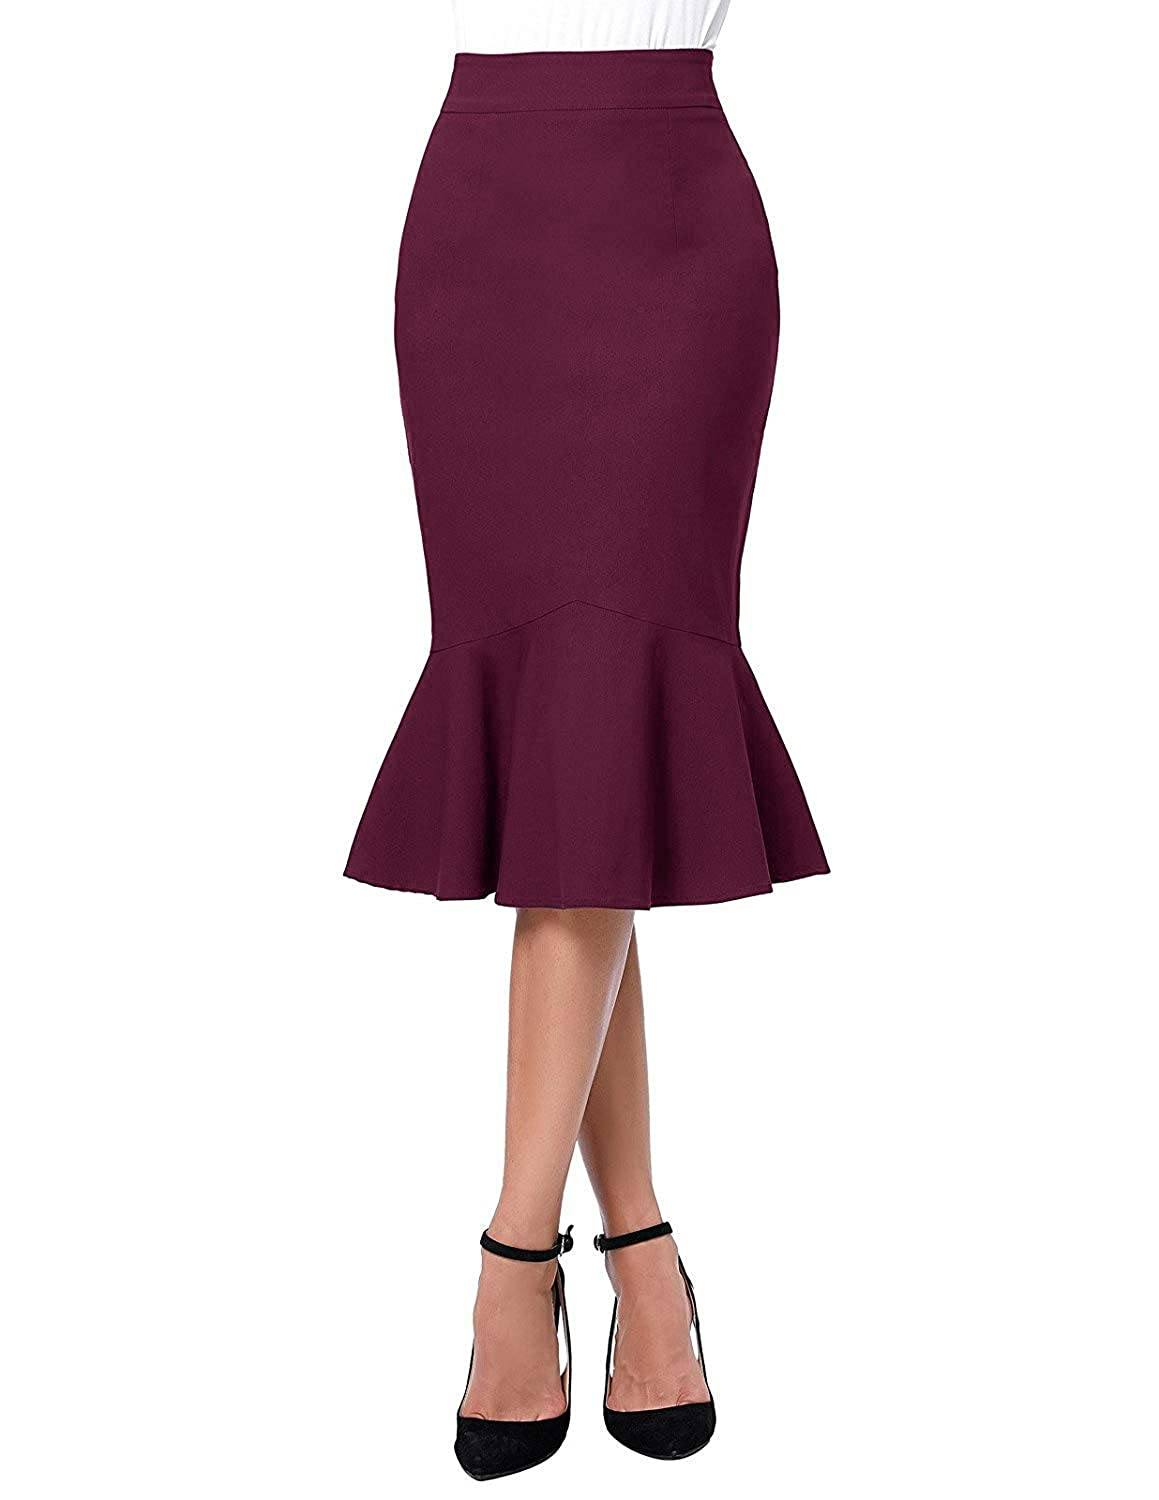 4f1c16c80 Women High Waist Bodycon Fishtail Skirts Mermaid hemline, Concealed zipper  in the left side. Suitable for Casual Occasion, Party, Cocktail, Office, ...